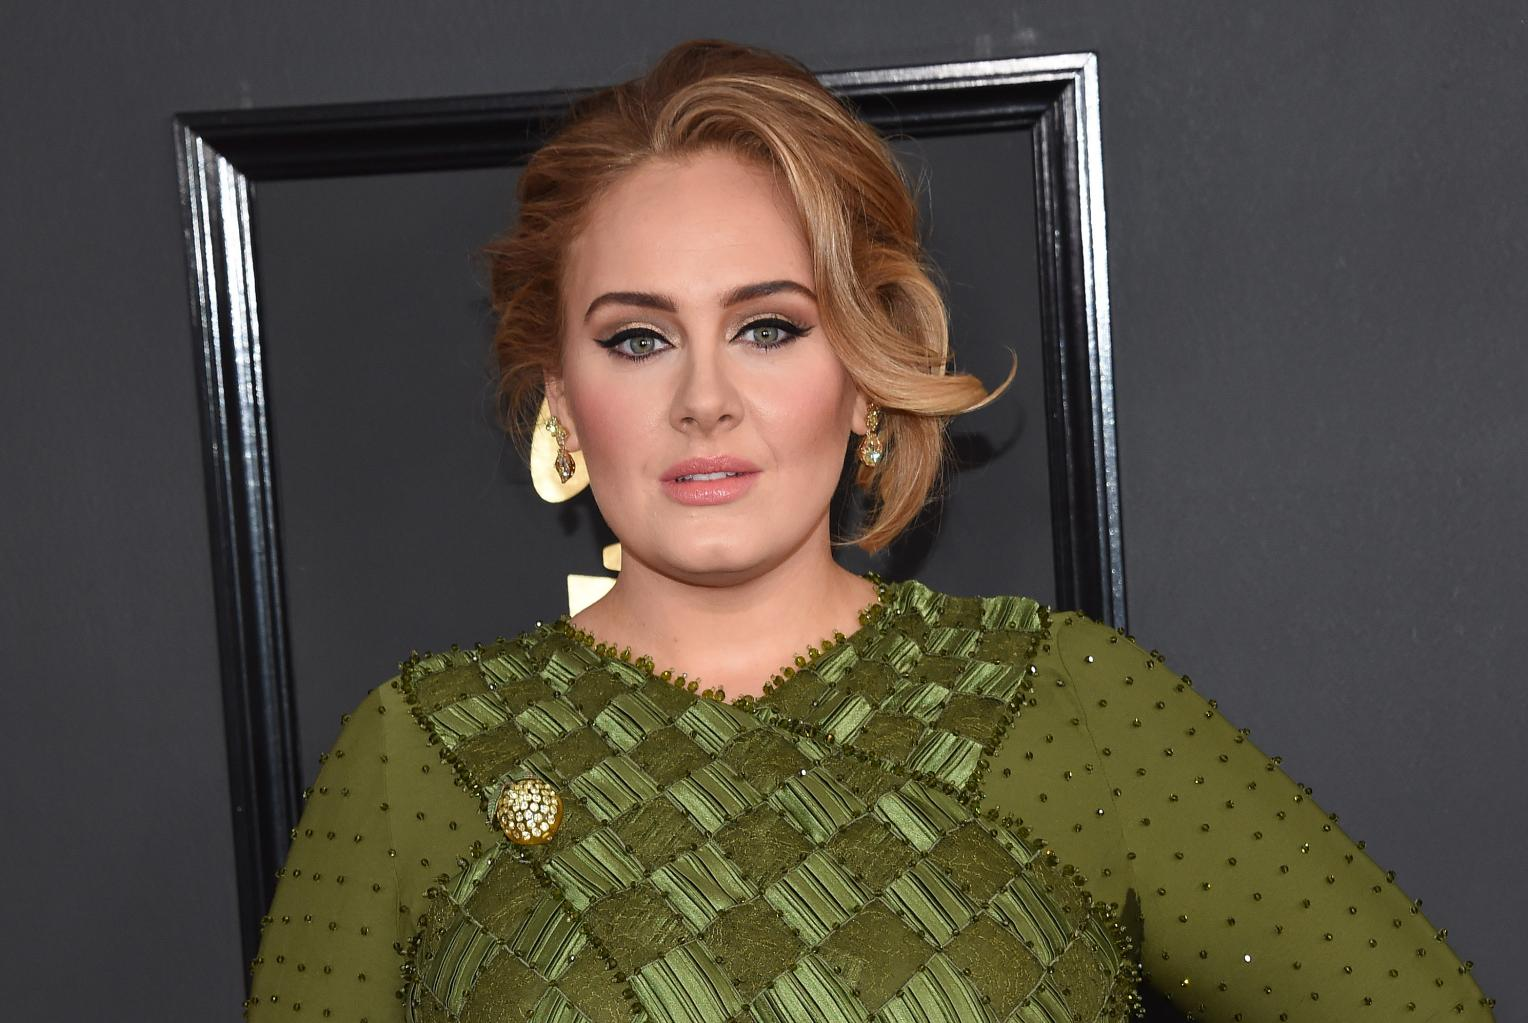 Con Man Arrested For Posing As Adele  's Manager To Nab Concert Tickets From Kendrick Lamar  's Manager